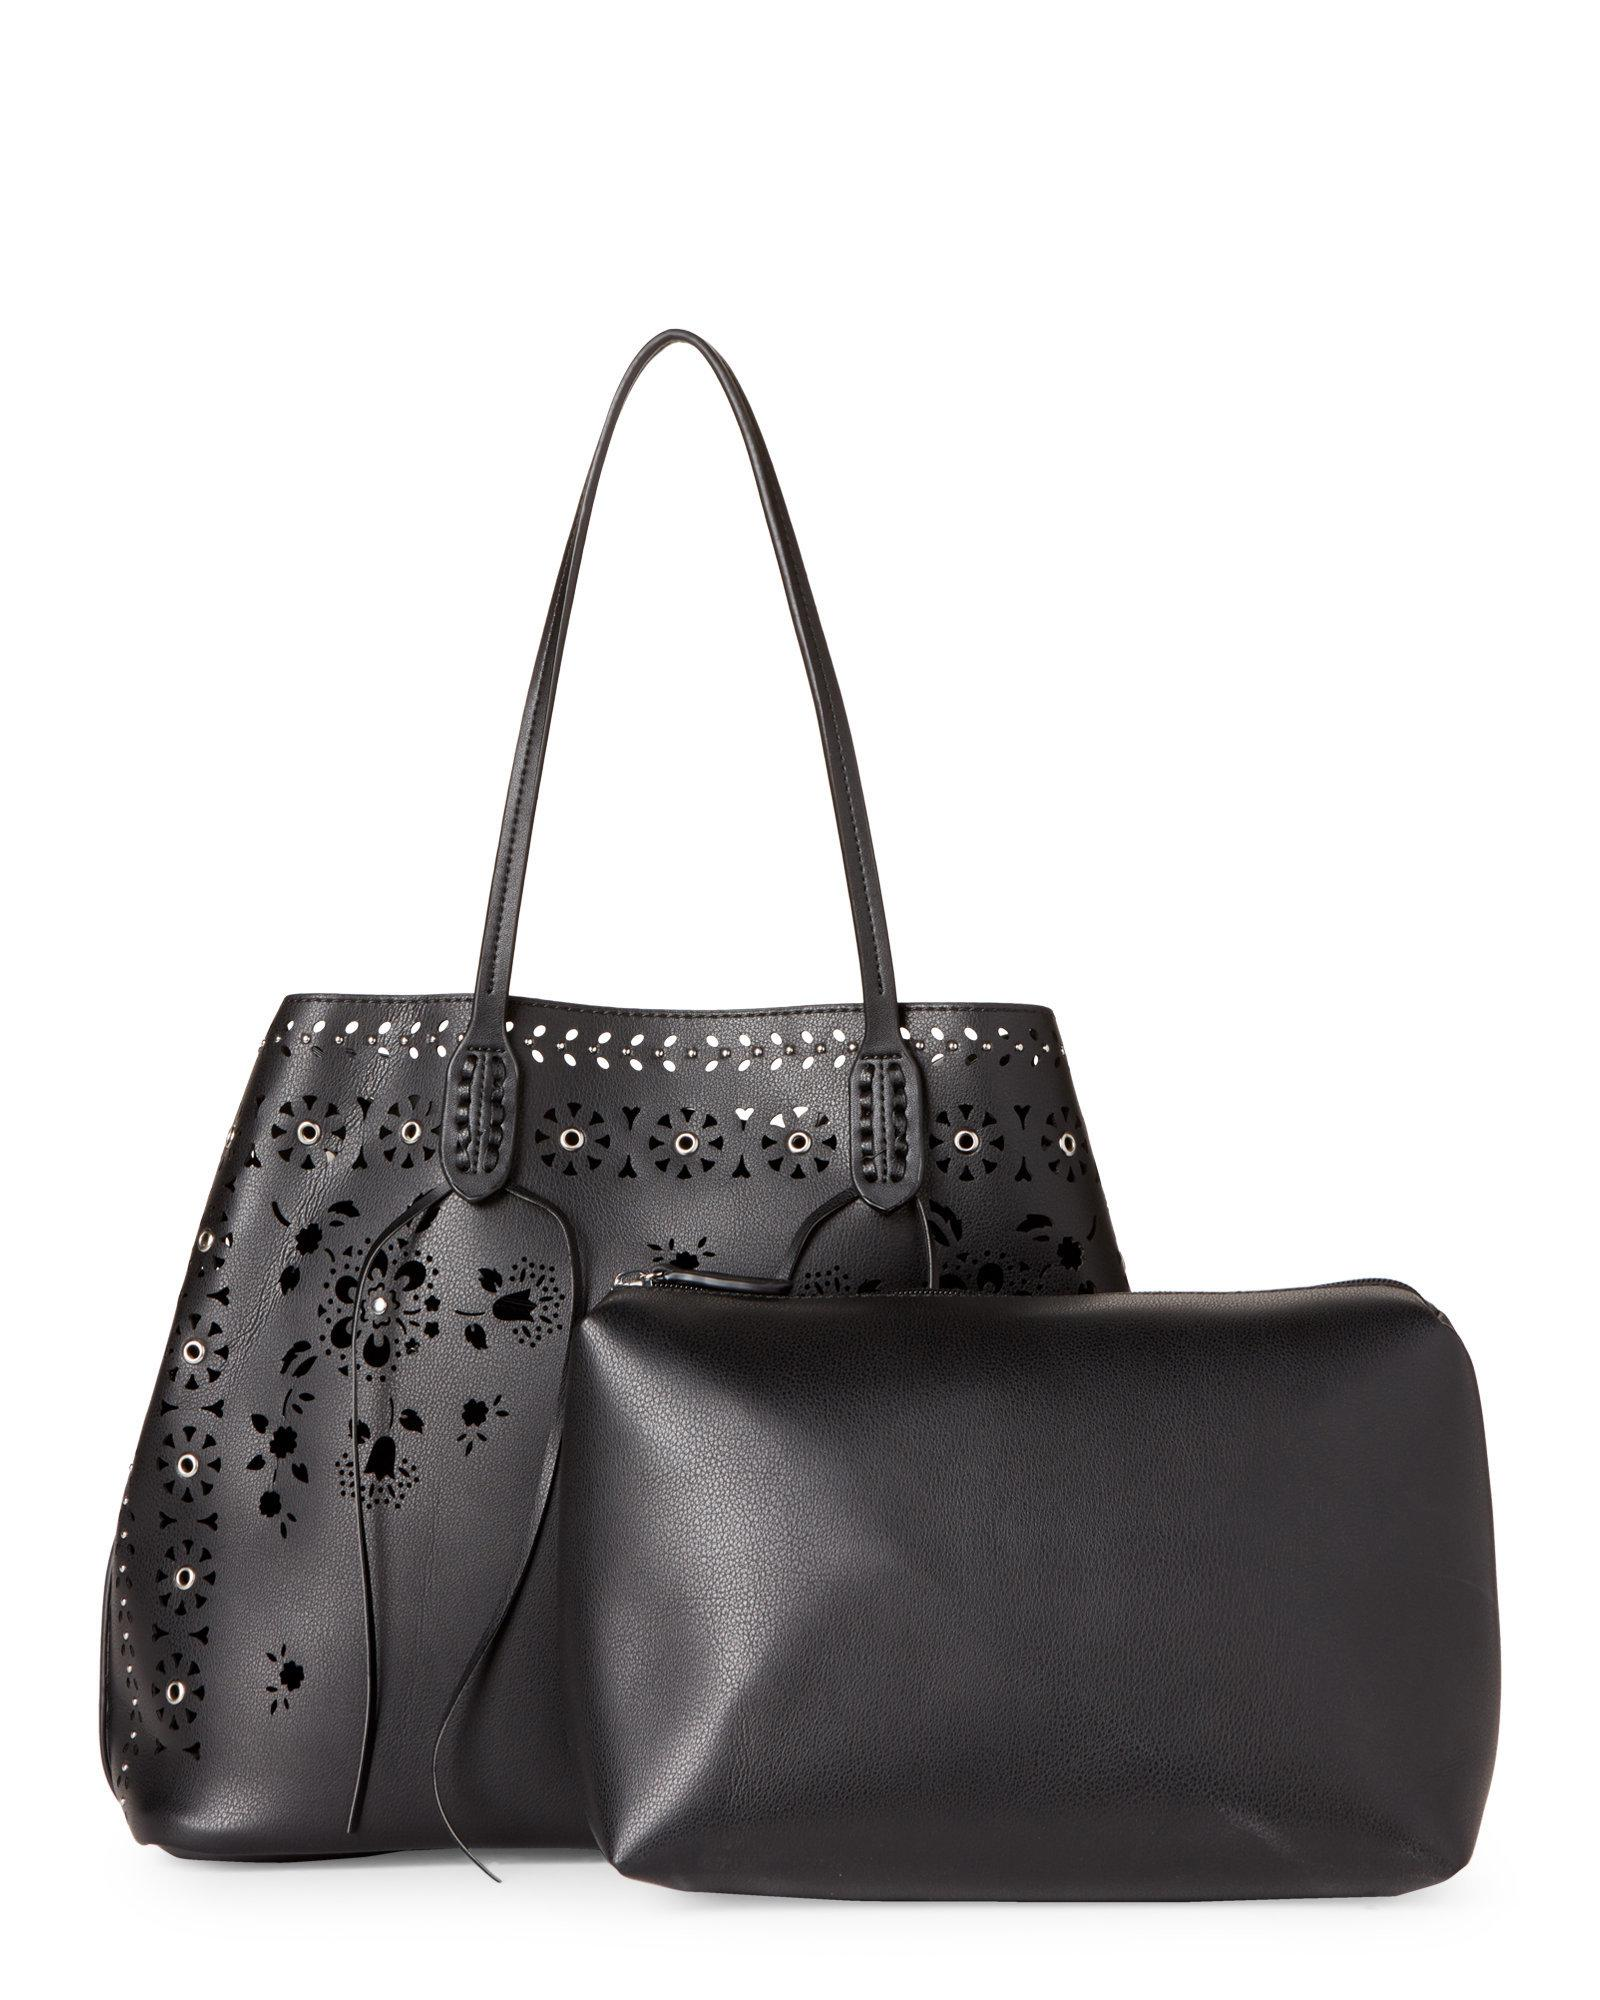 227dcd38c8decf Lyst - Moda Luxe Black Chanel Perforated Bag-in-bag Tote in Black